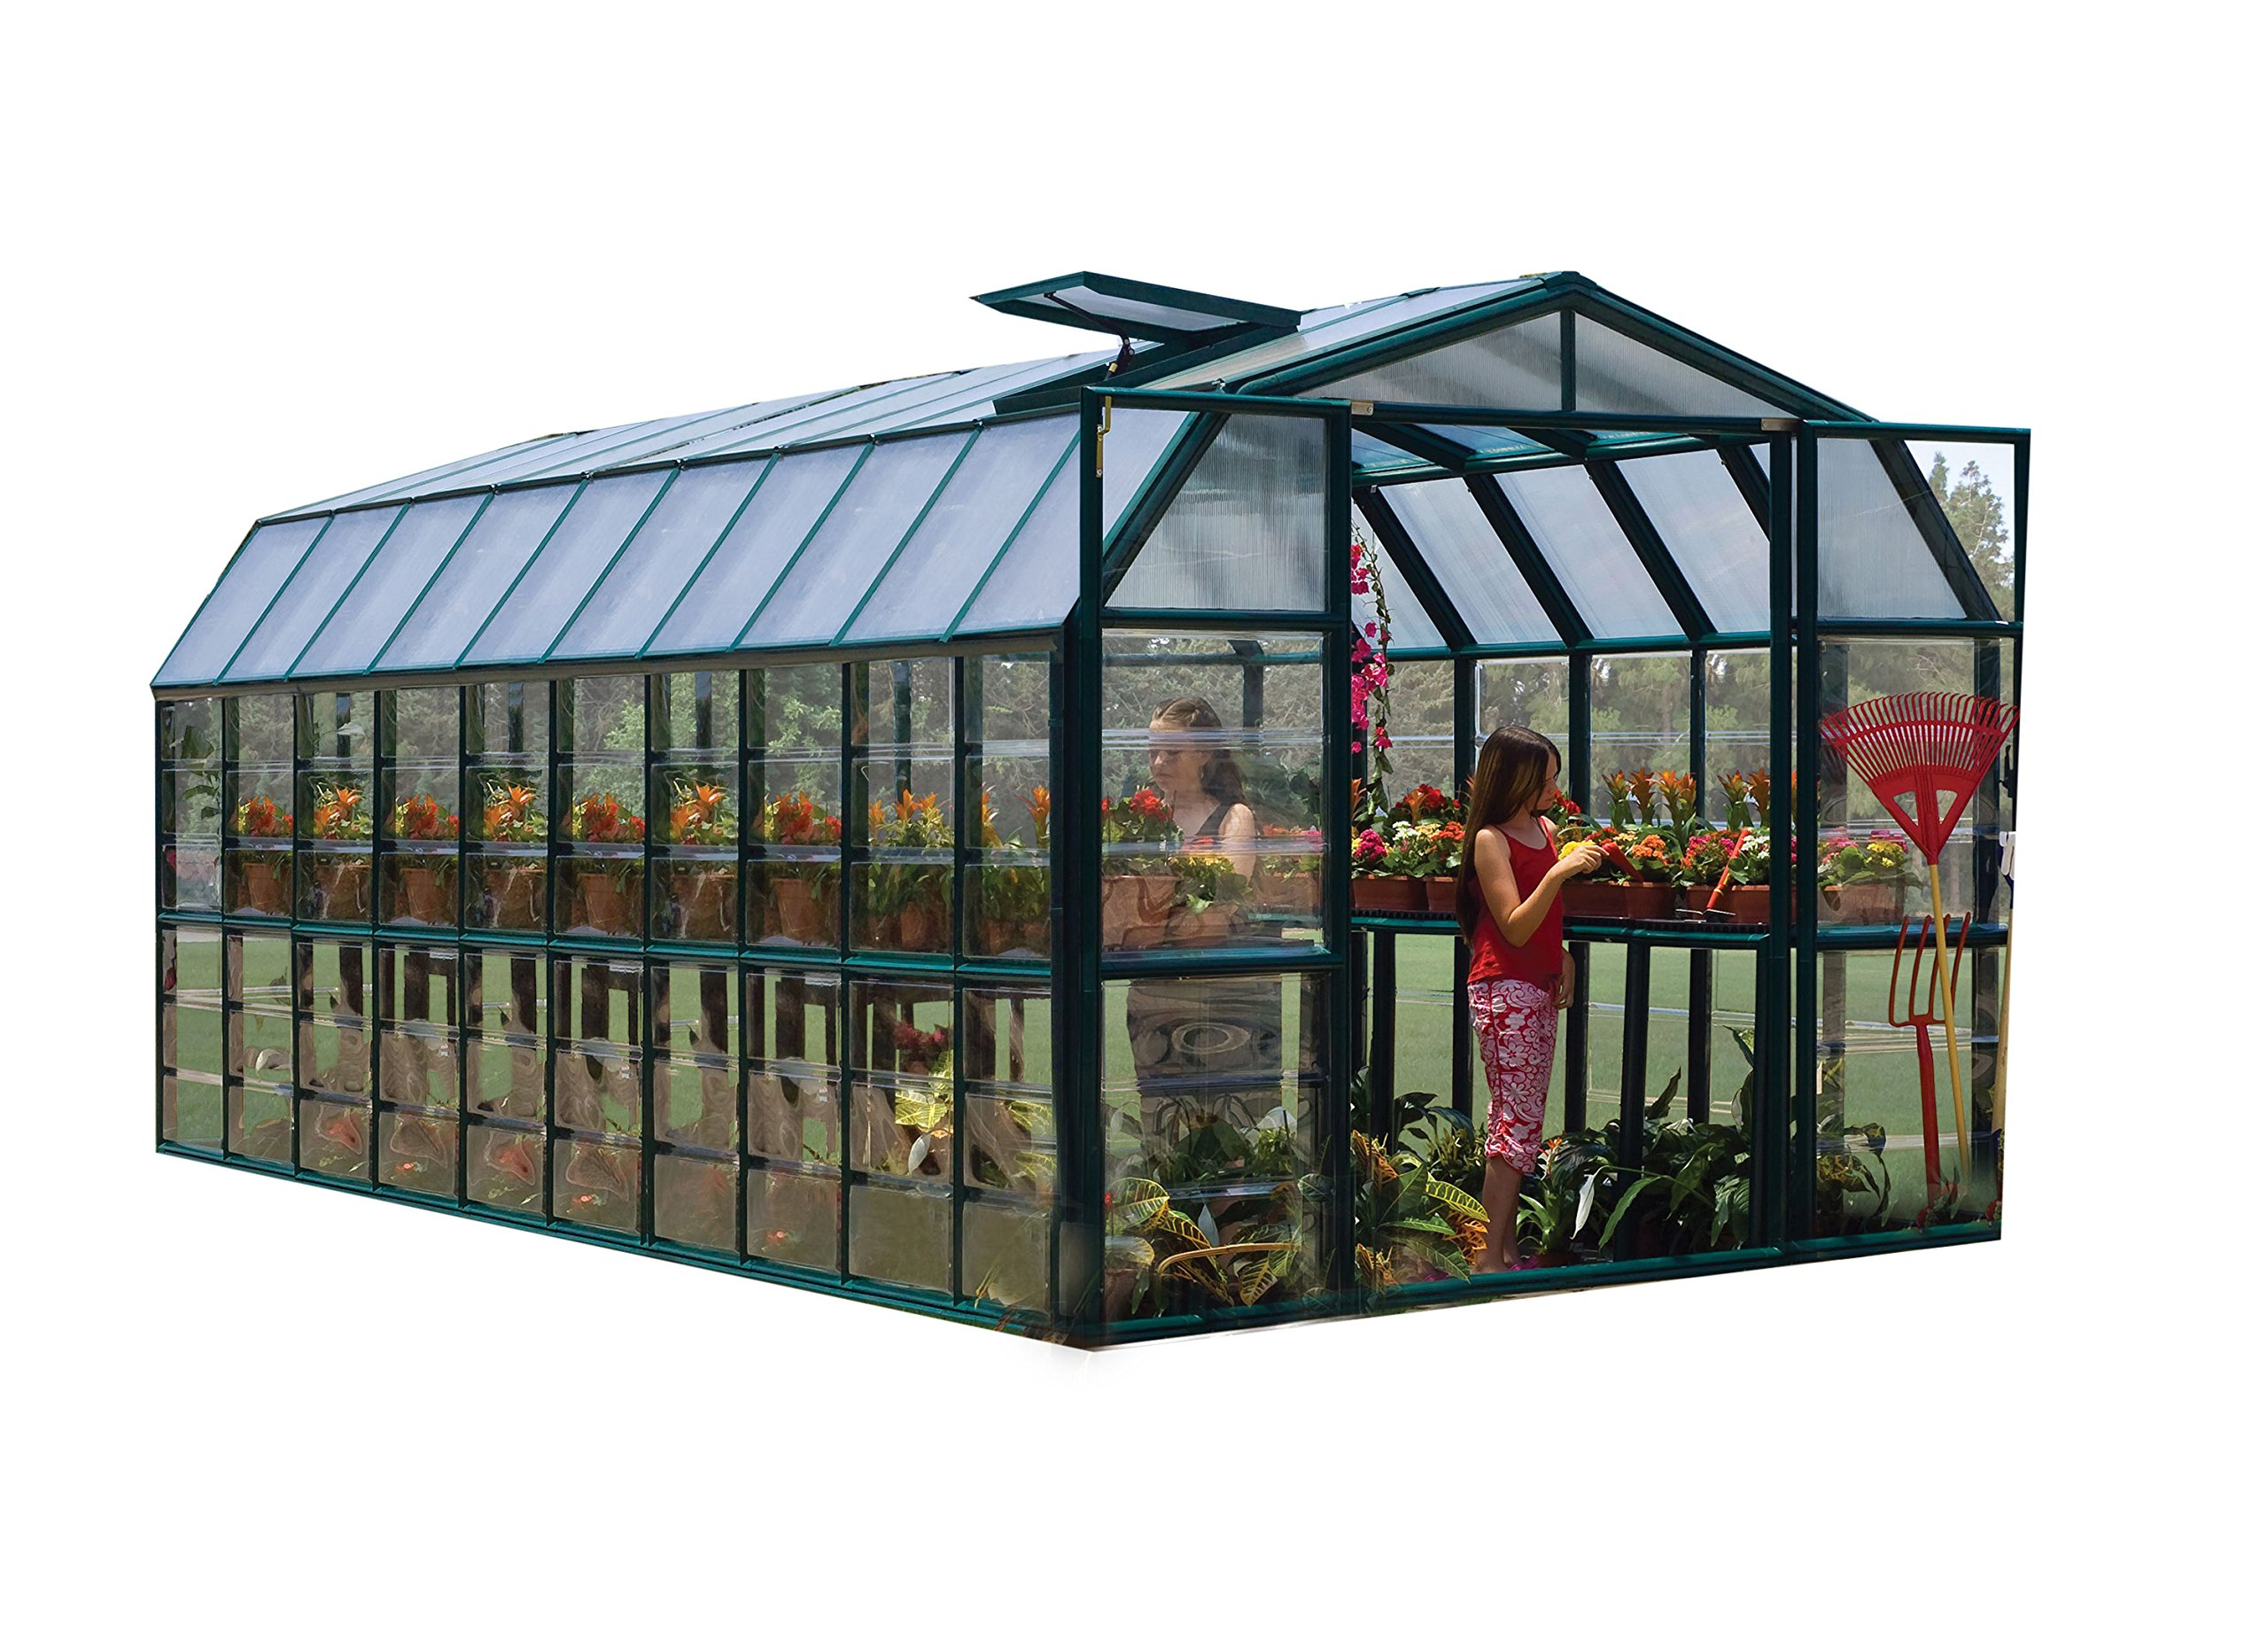 Rion Grand Gardener 2 Clear Greenhouse, 8' x 20'